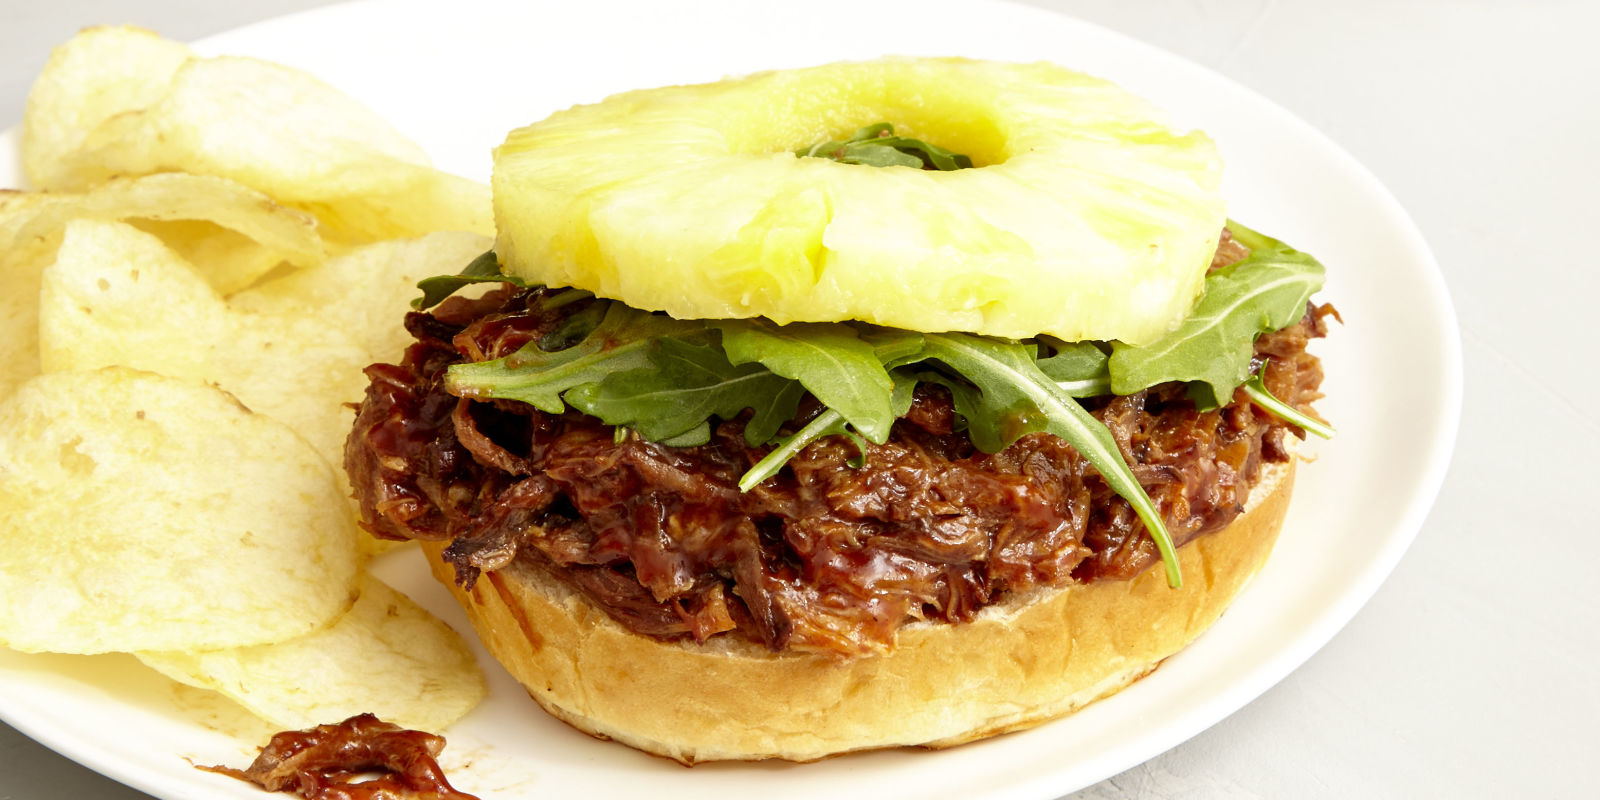 ... Pulled Pork Sandwiches Recipe - How To Make Pulled Pork - Delish.com